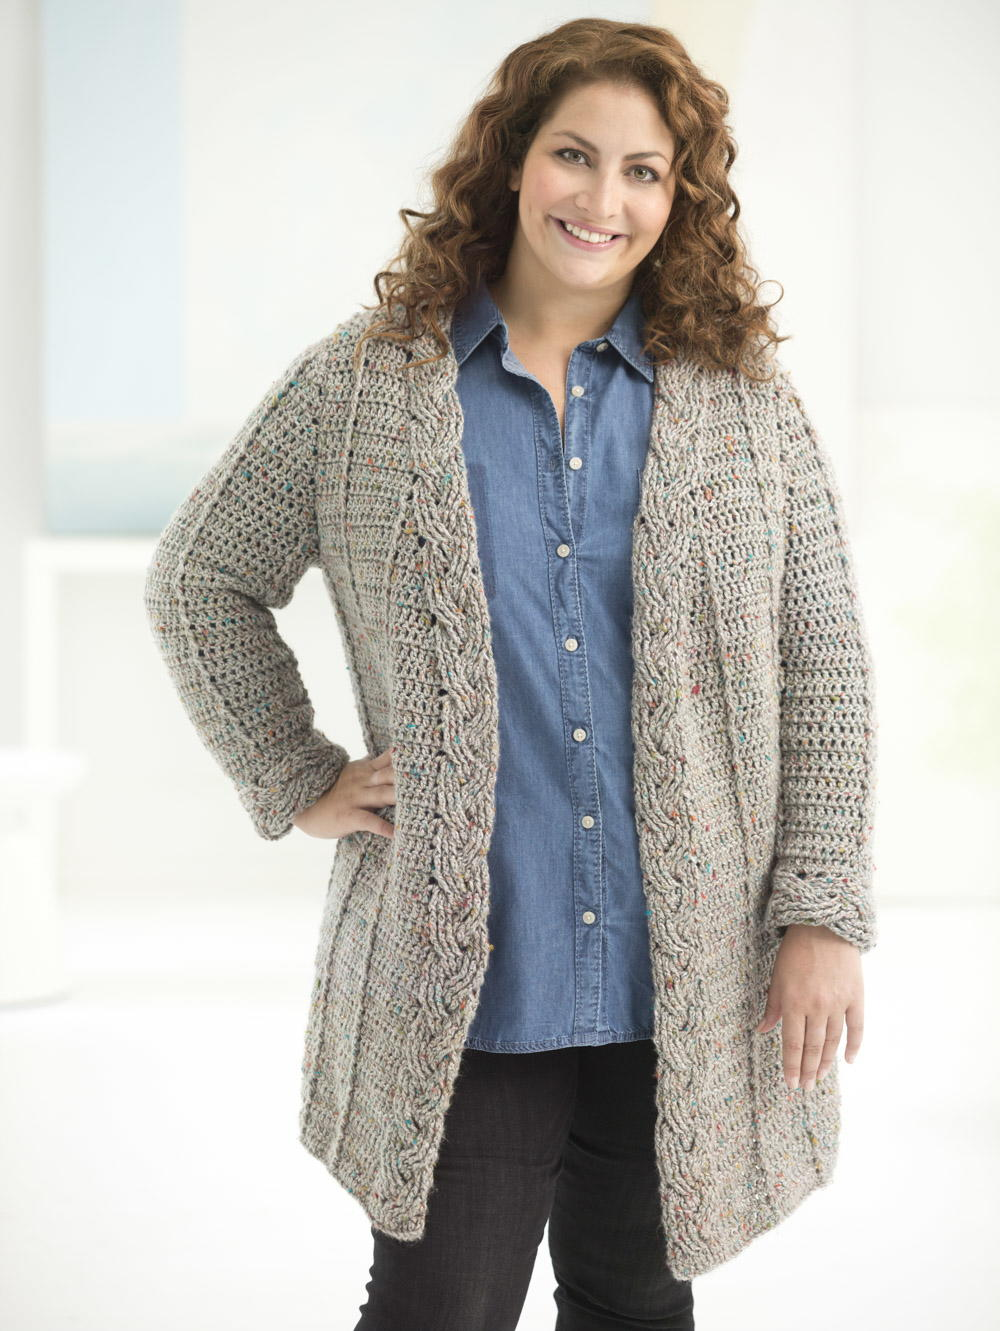 Free Crochet Pattern For Cabled Sweater : Curvy Girl Cable Crochet Cardigan AllFreeCrochet.com